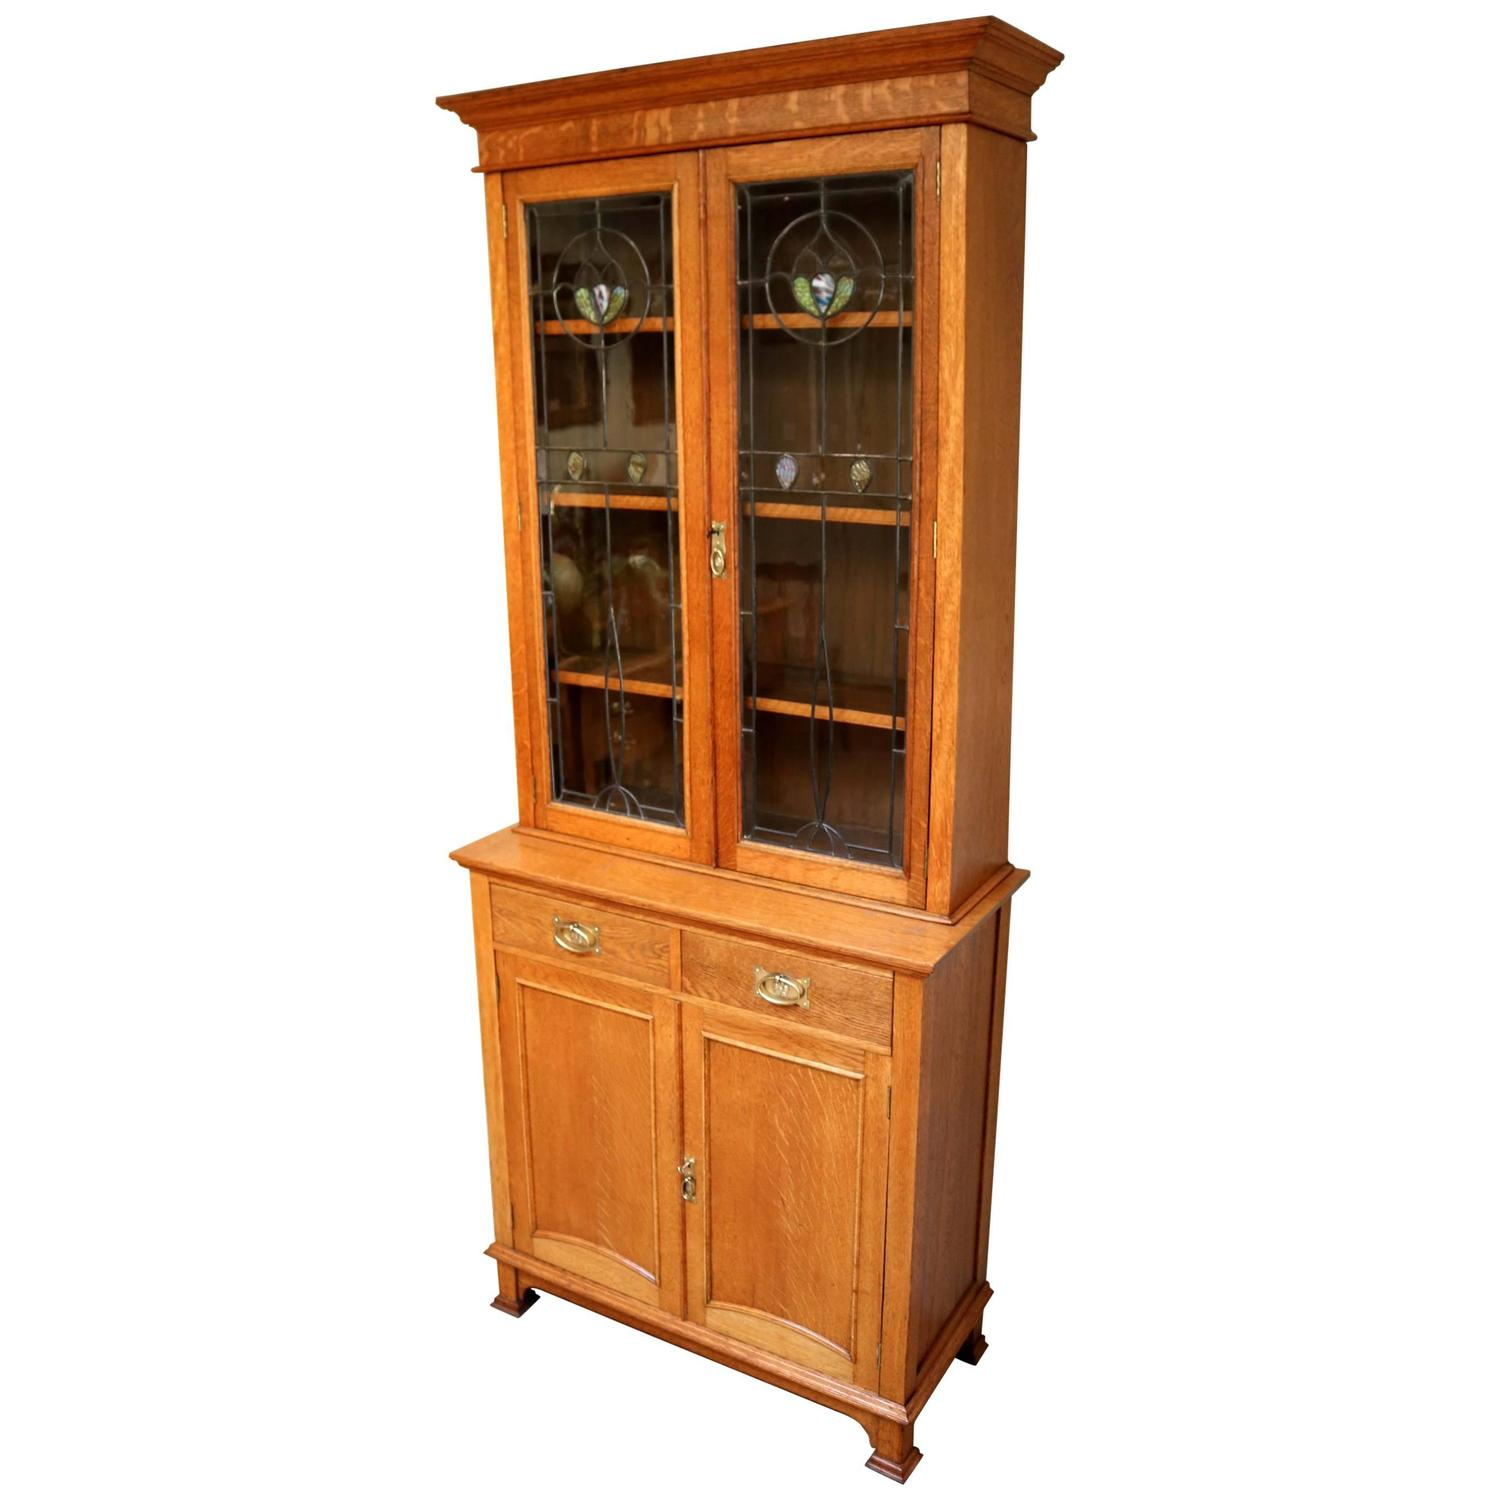 Arts and crafts cabinet bookcase for sale at 1stdibs for Arts and crafts storage cabinet